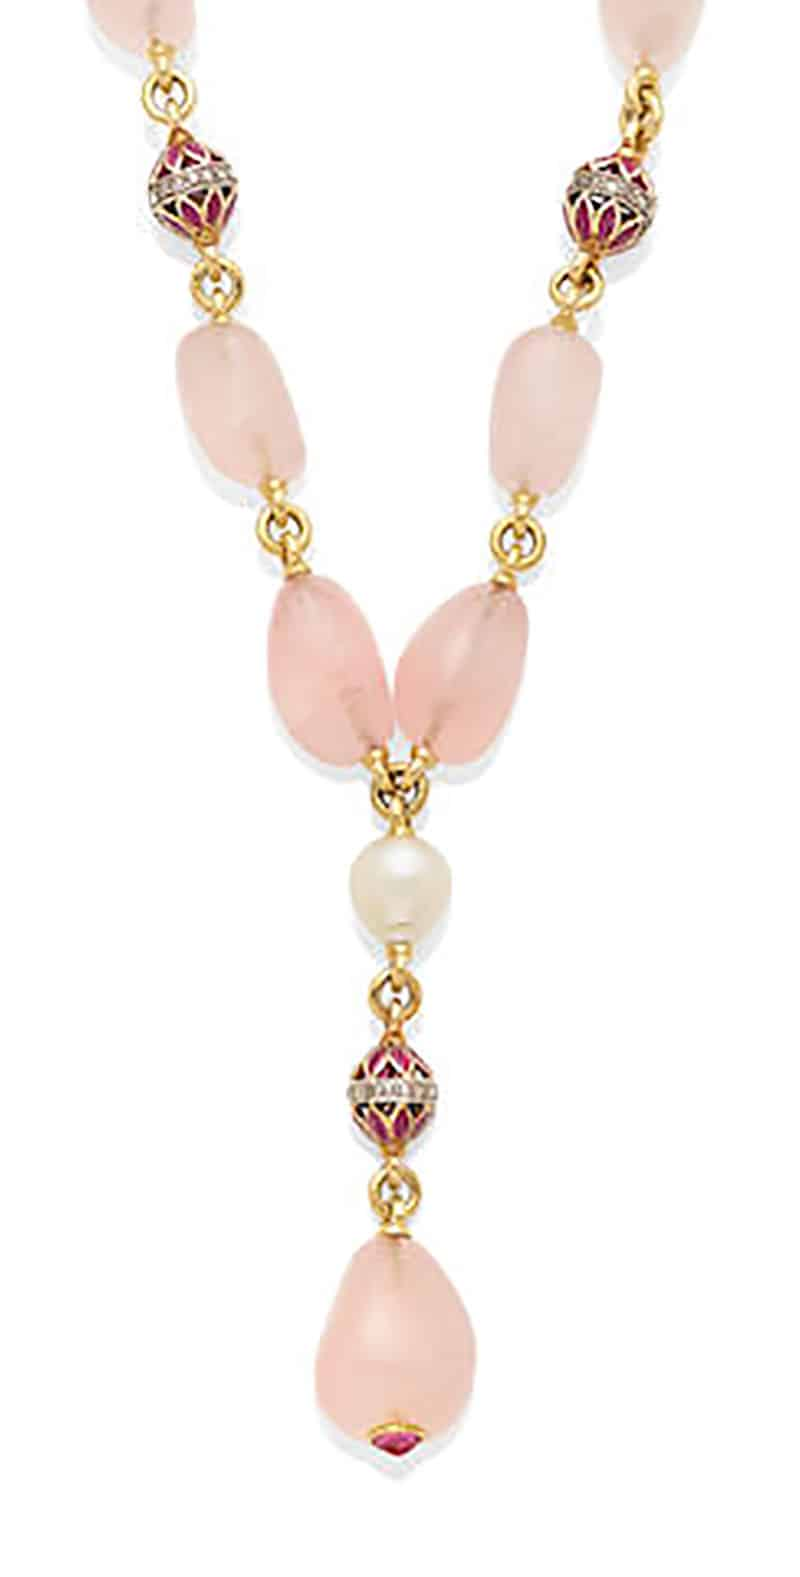 LOT 284 - A ROSE QUARTZ BEAD, CULTURED PEARL, RUBY, DIAMOND AND 18K GOLD NECKLACE, Verdura